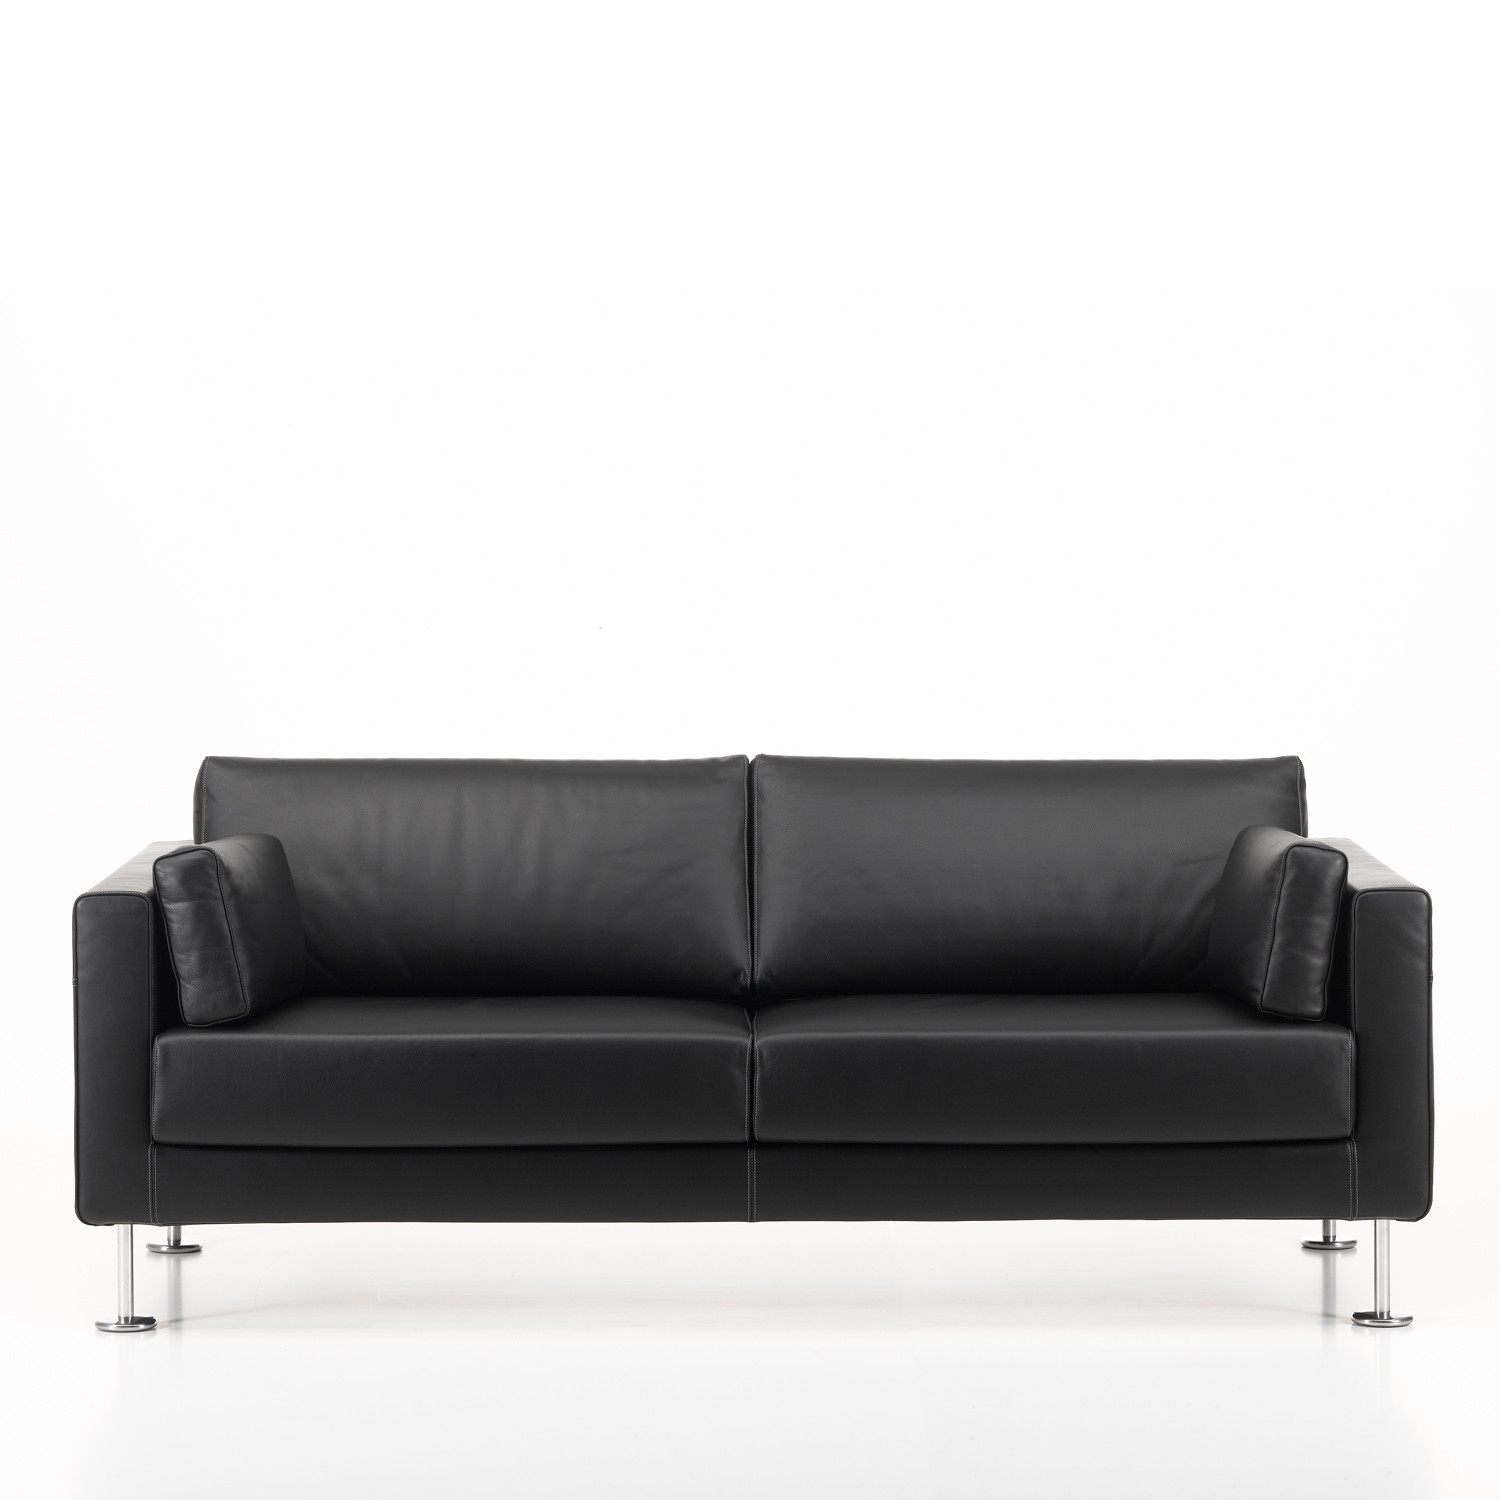 Park 2-Seater Sofa by Jasper Morrison